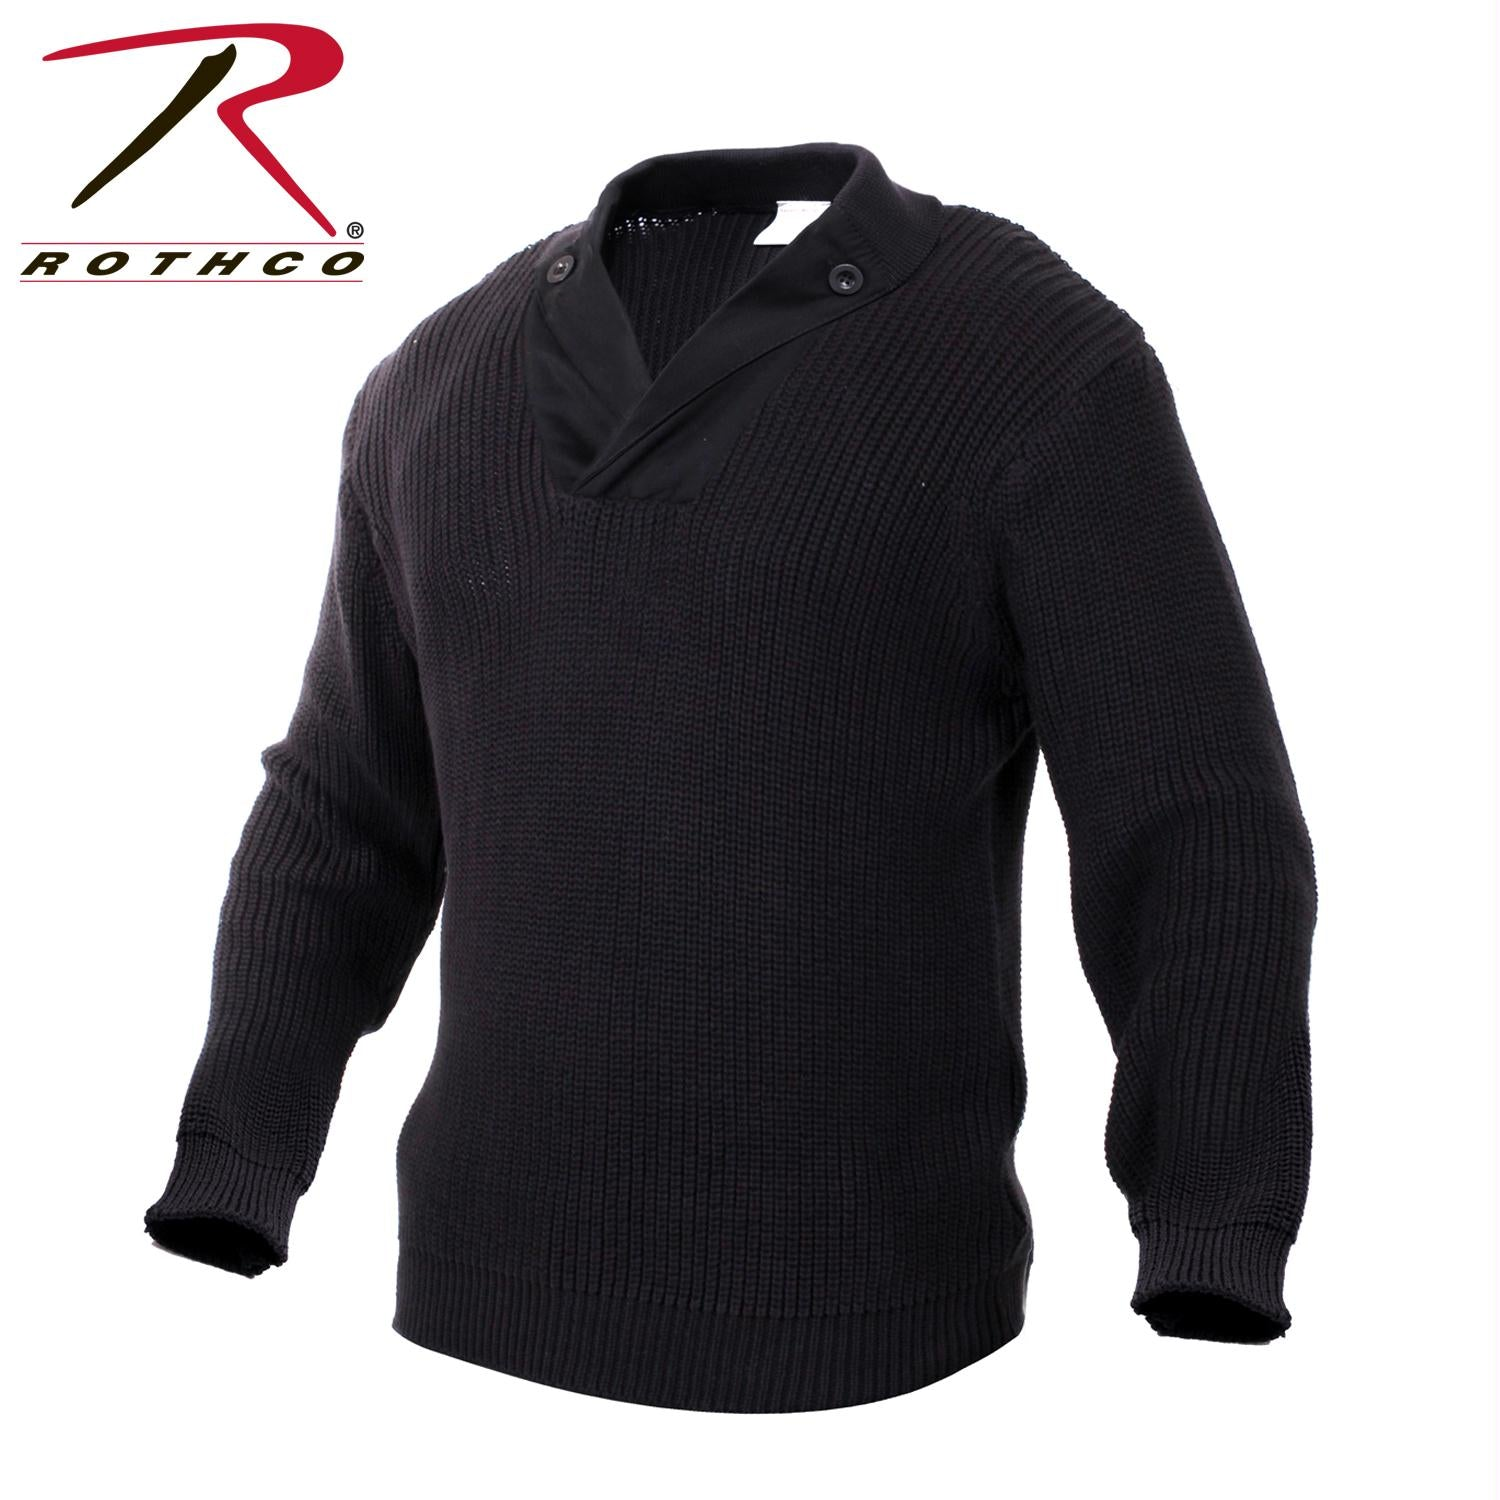 Rothco WWII Vintage Mechanics Sweater - Black / XL